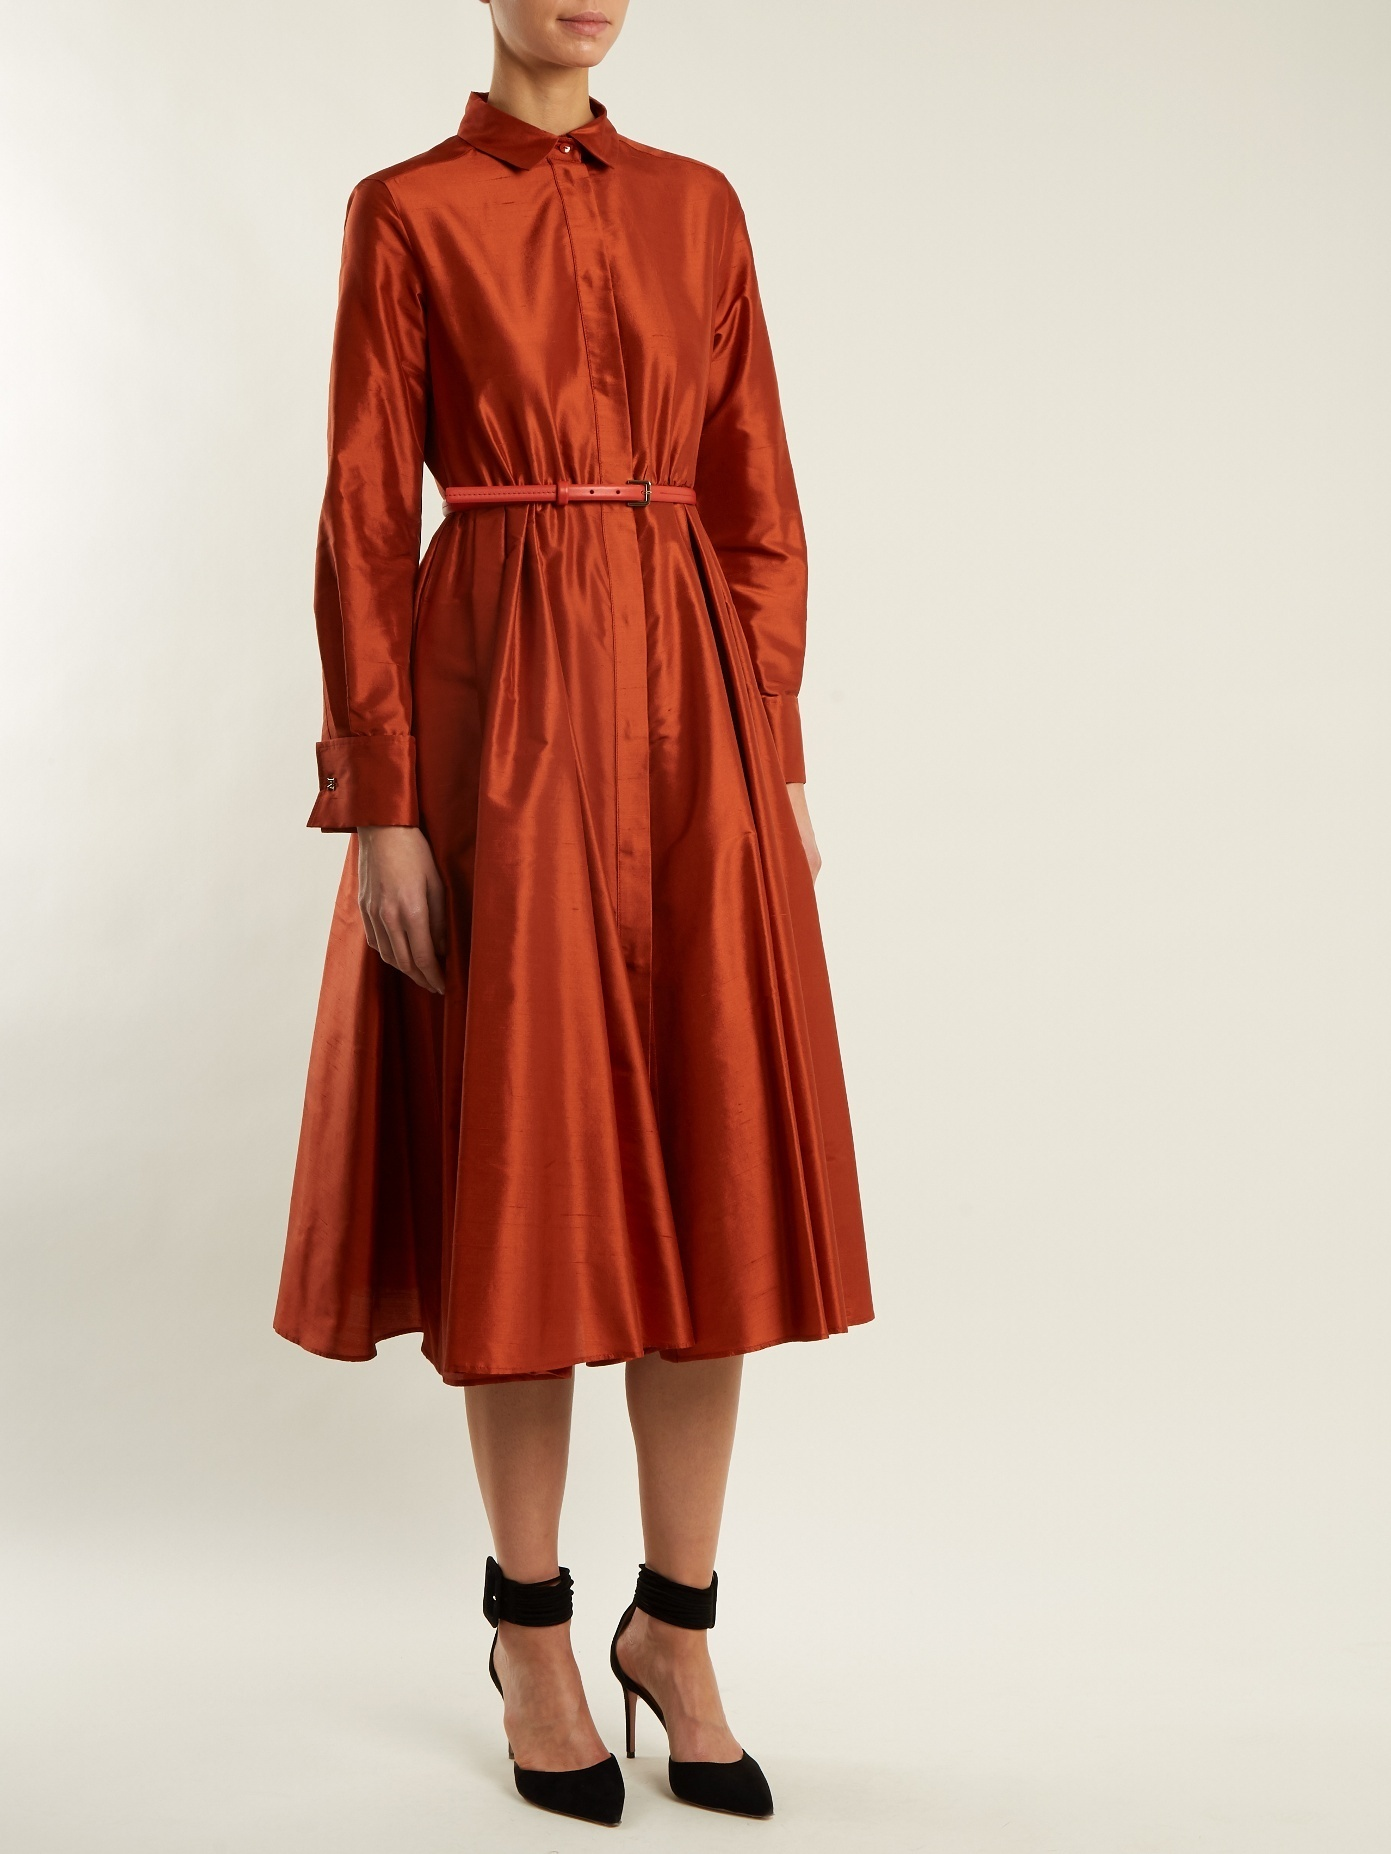 【国内発送】MAX MARA Fiorire dress Burnt-orange